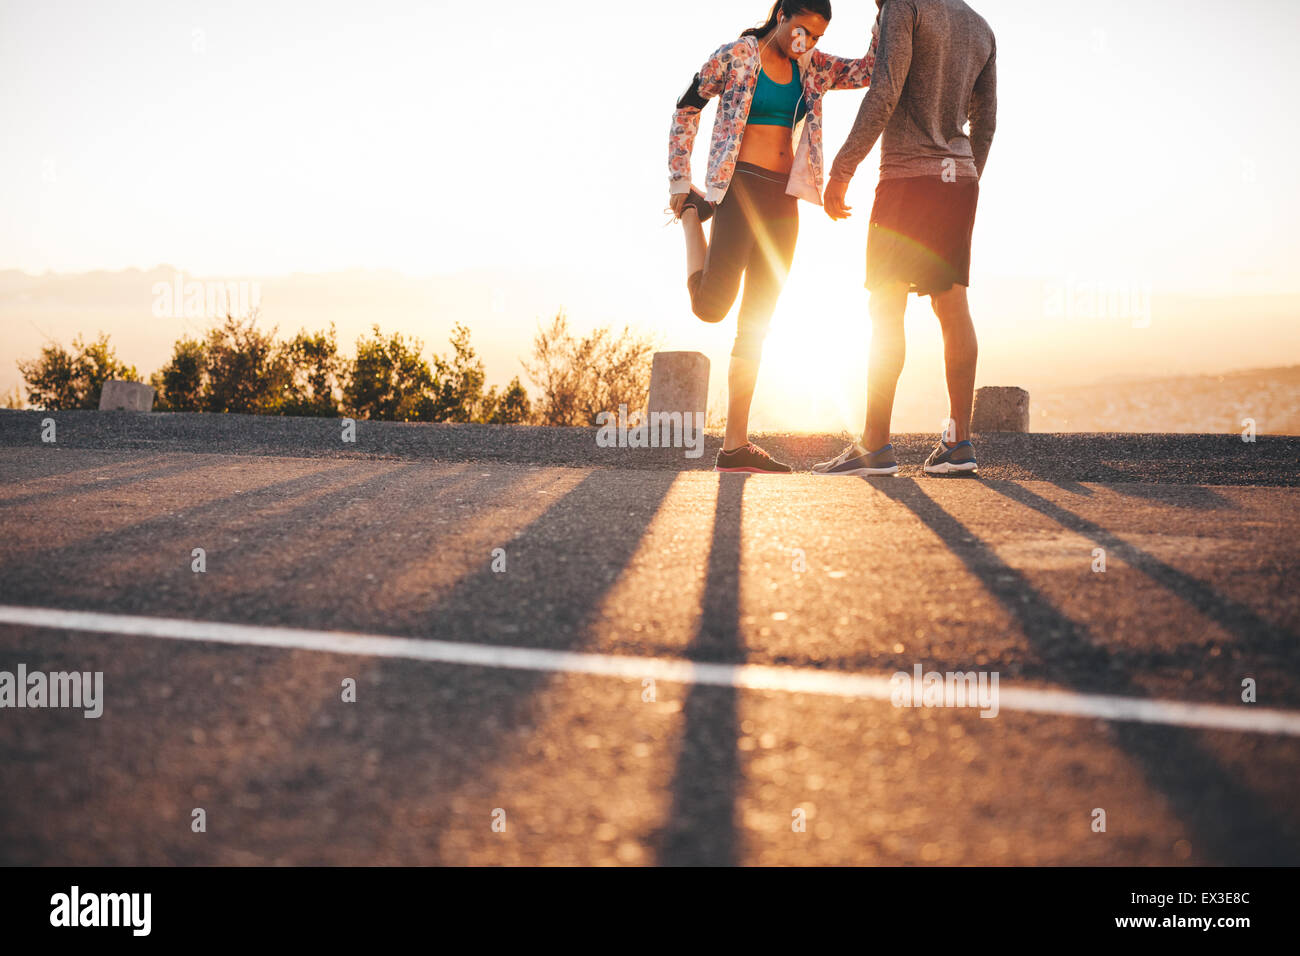 Outdoor shot of young joggers stretching before a run in morning. Young man standing and woman stretching her legs - Stock Image